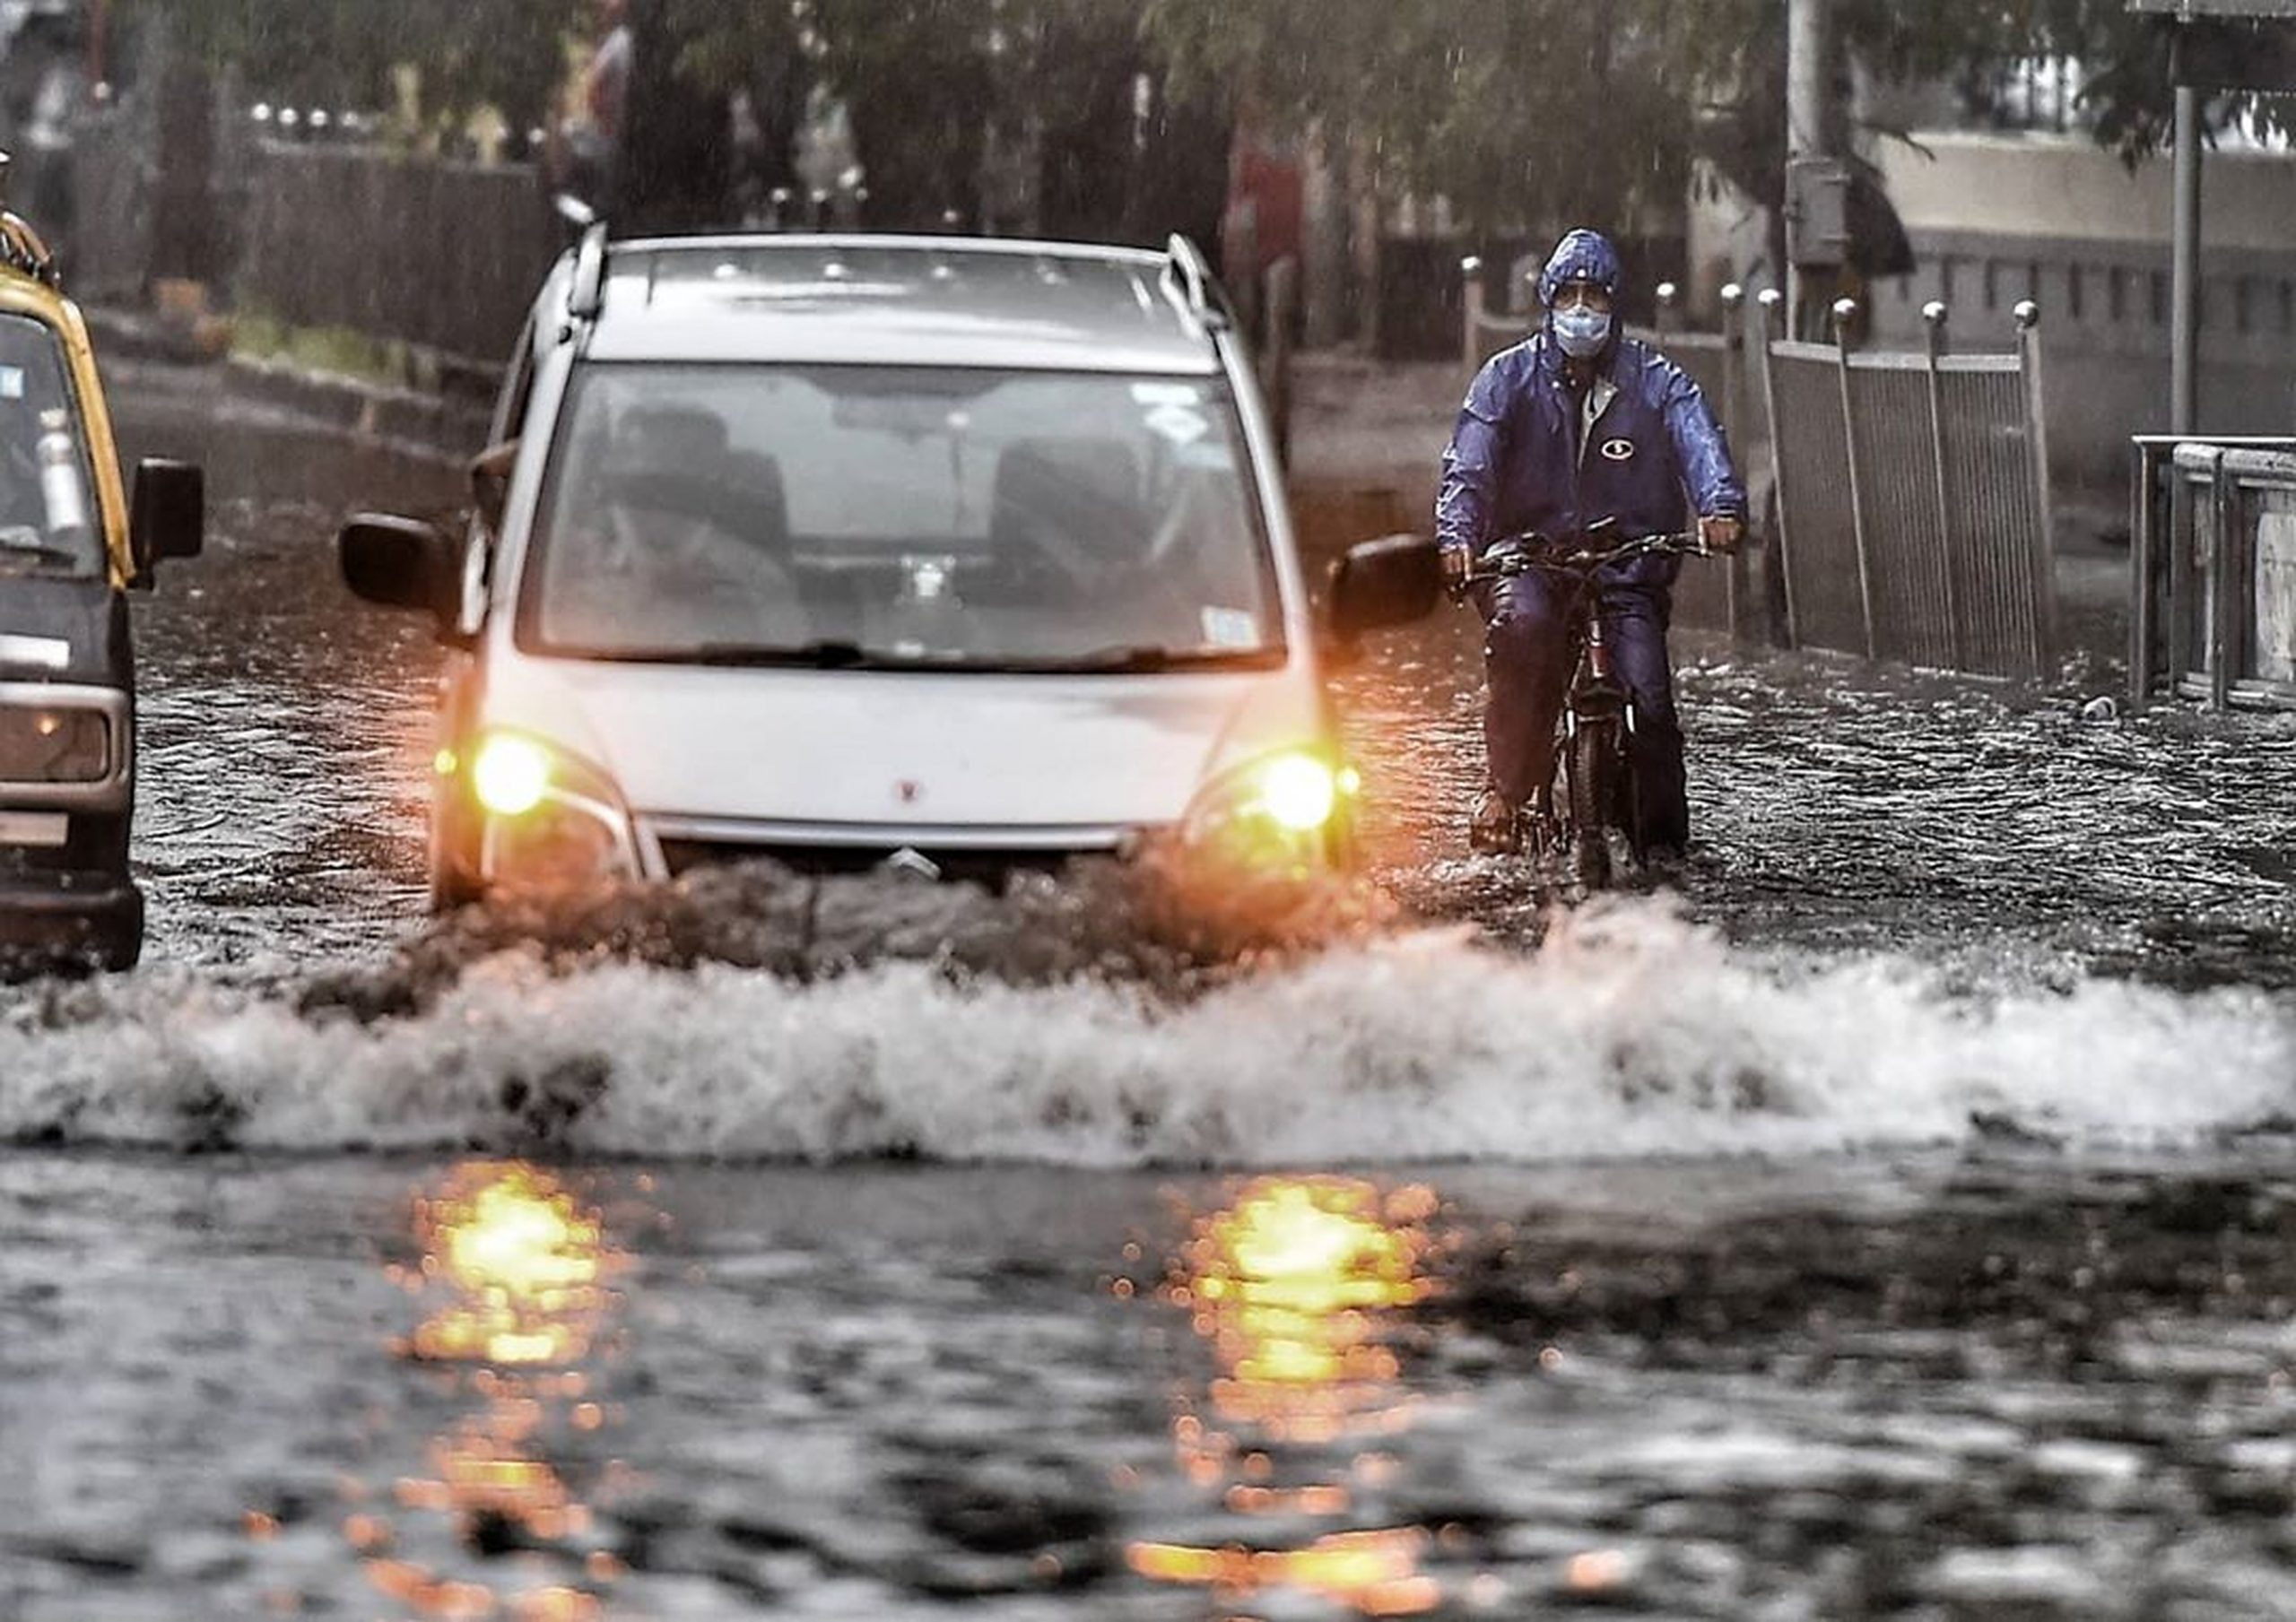 vehicles in waterlogged road